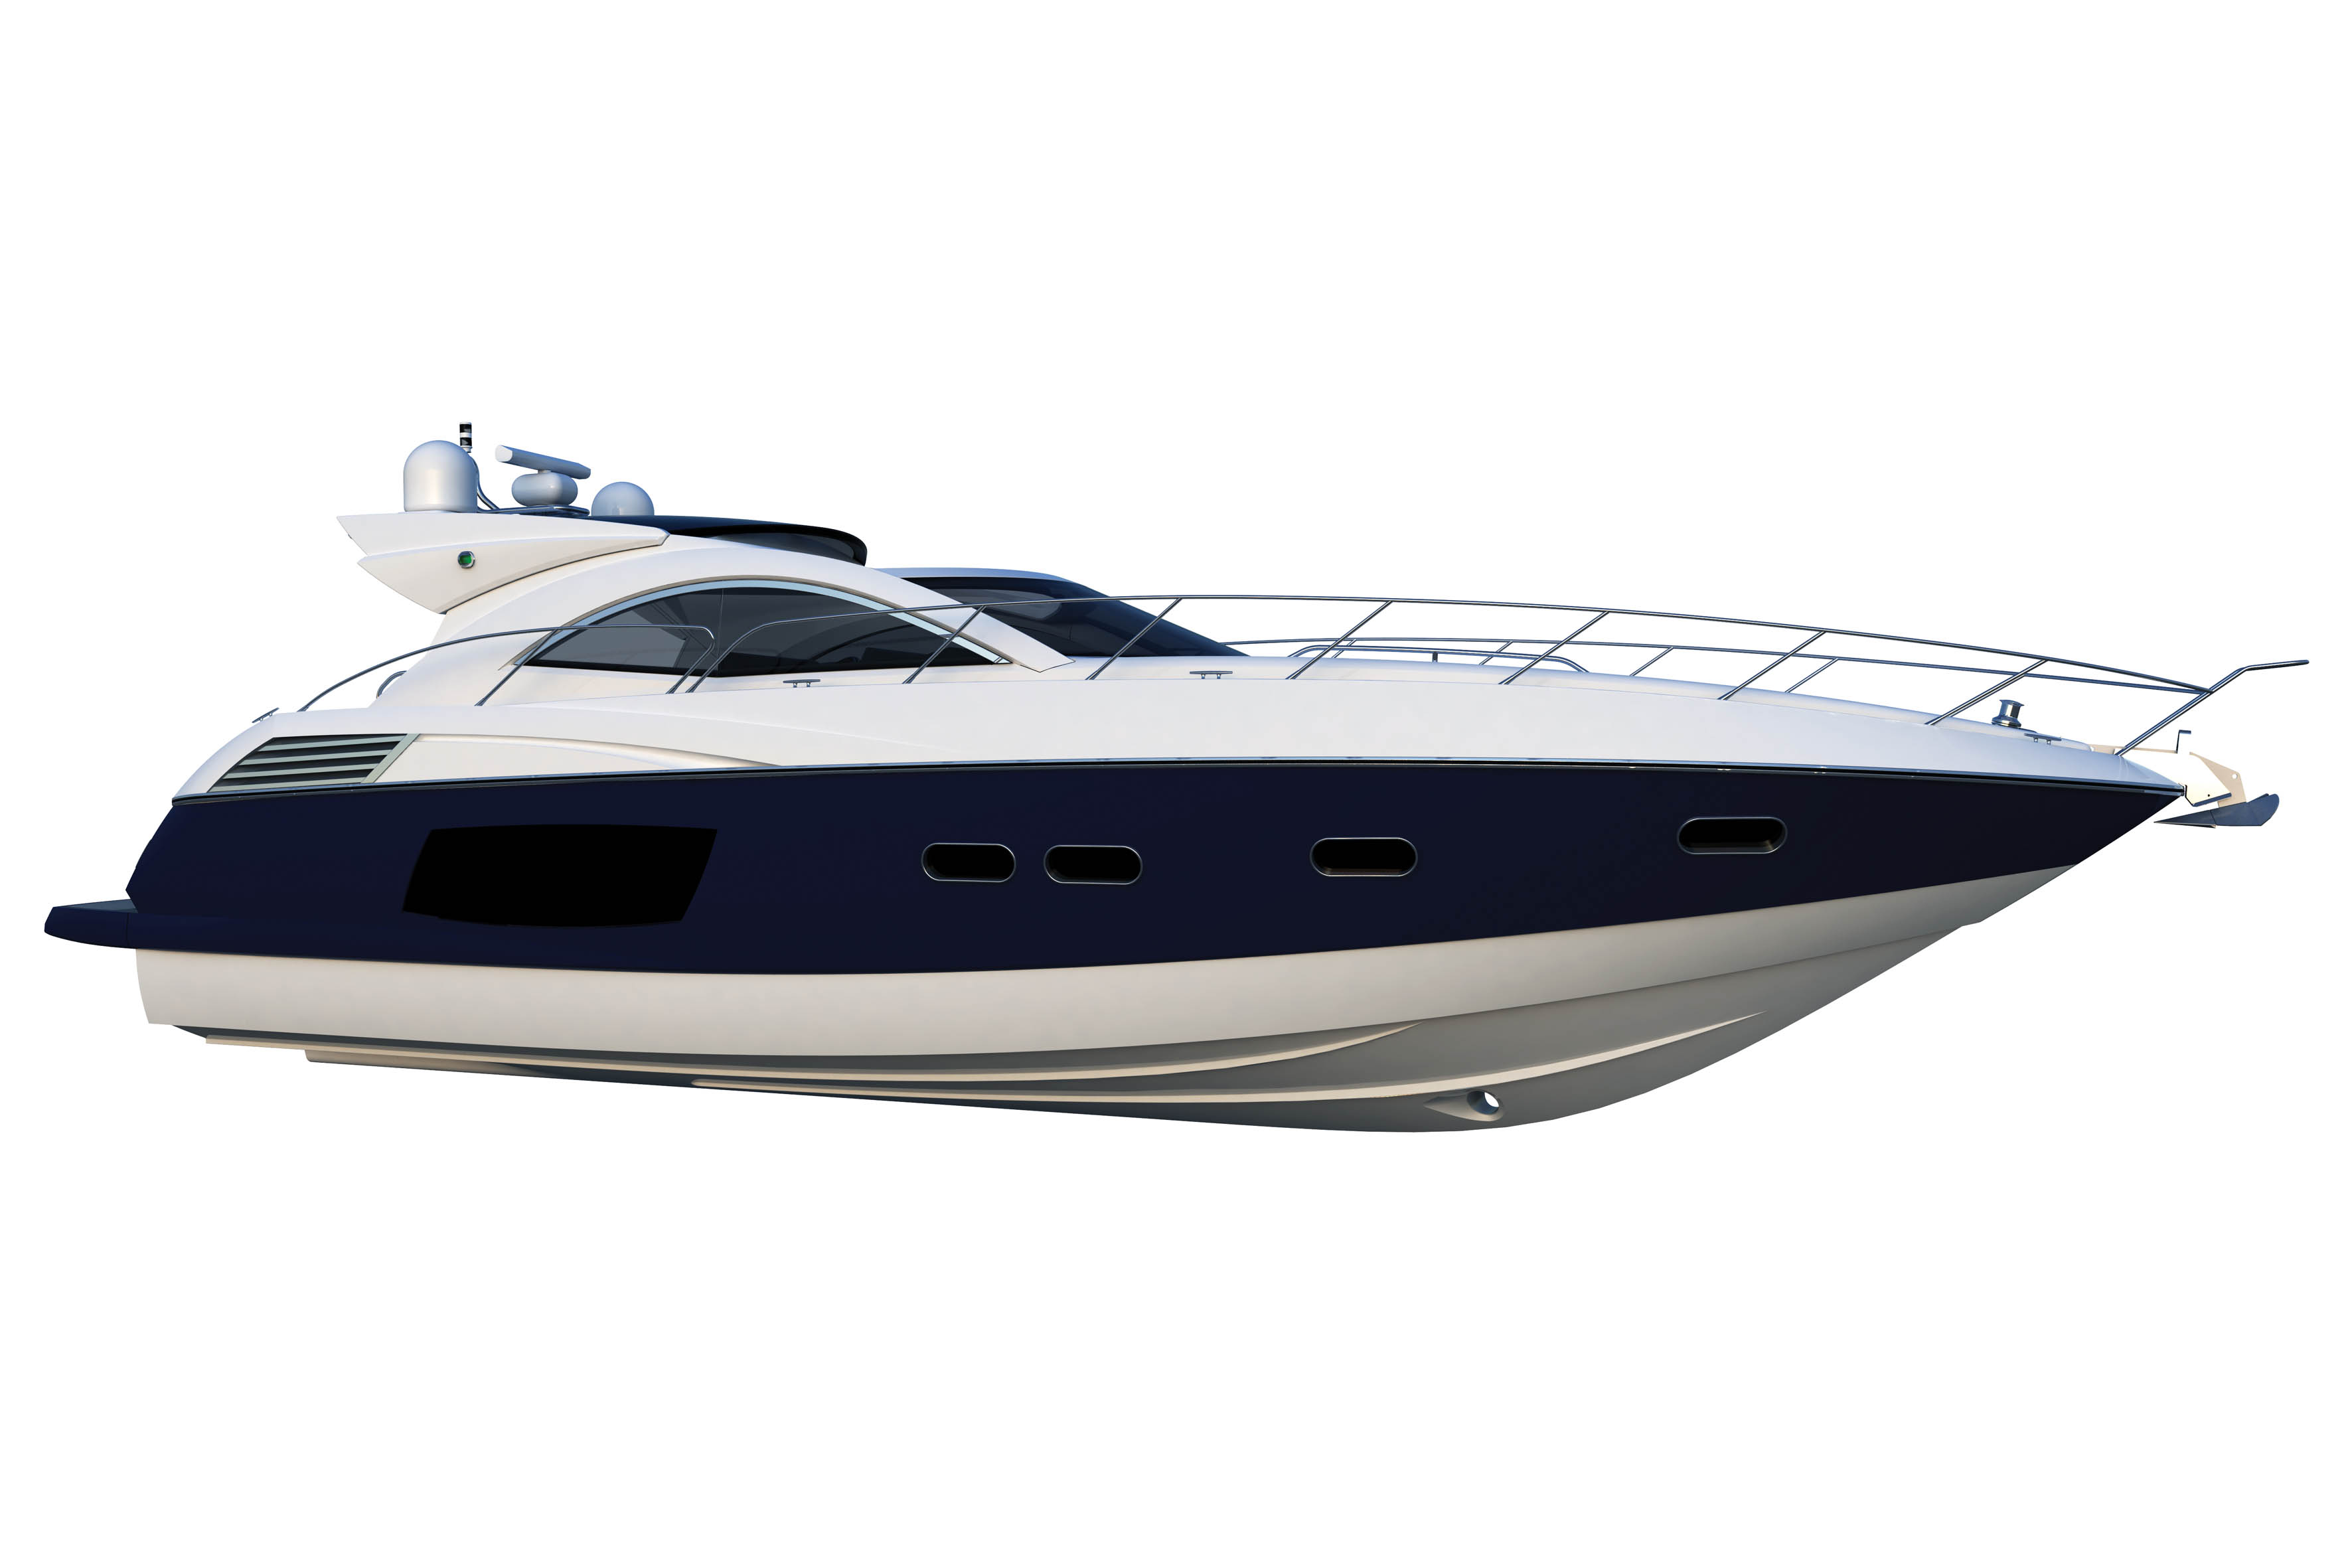 New Sunseeker 48 Portofino due for launch at London